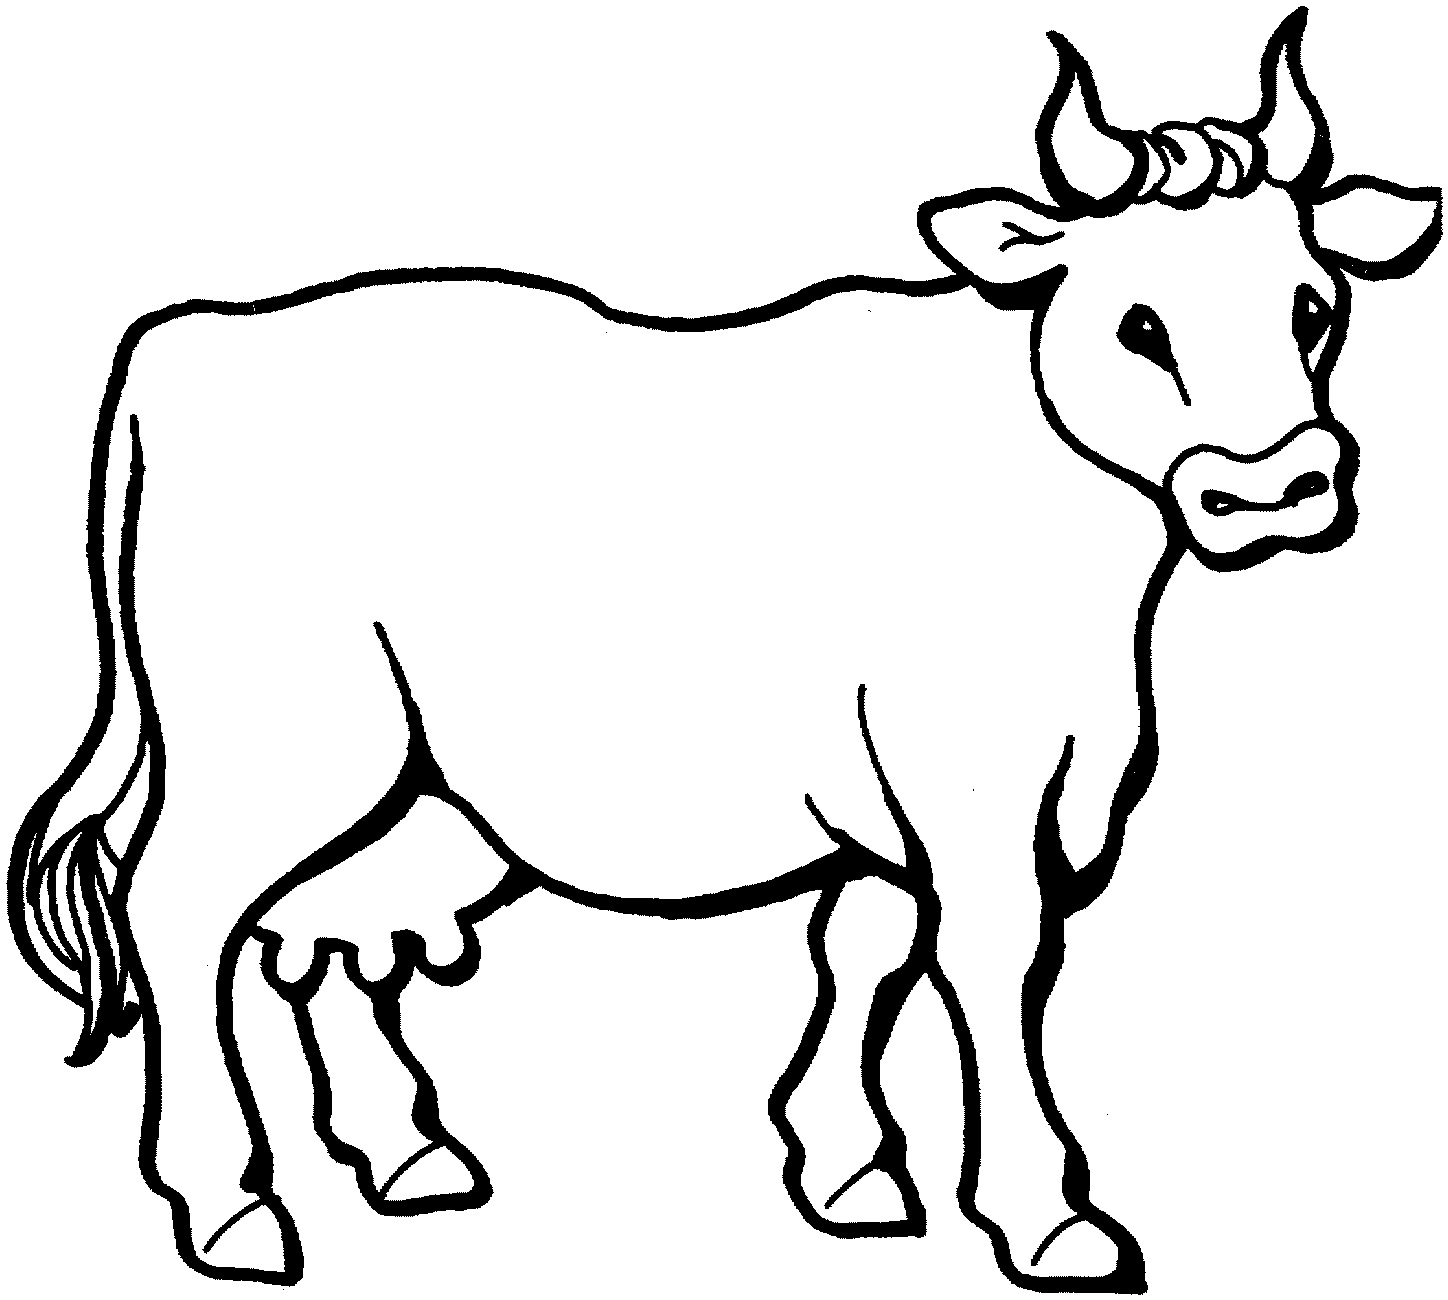 Free Printable Cow Coloring Pages For Kids | Animal Place